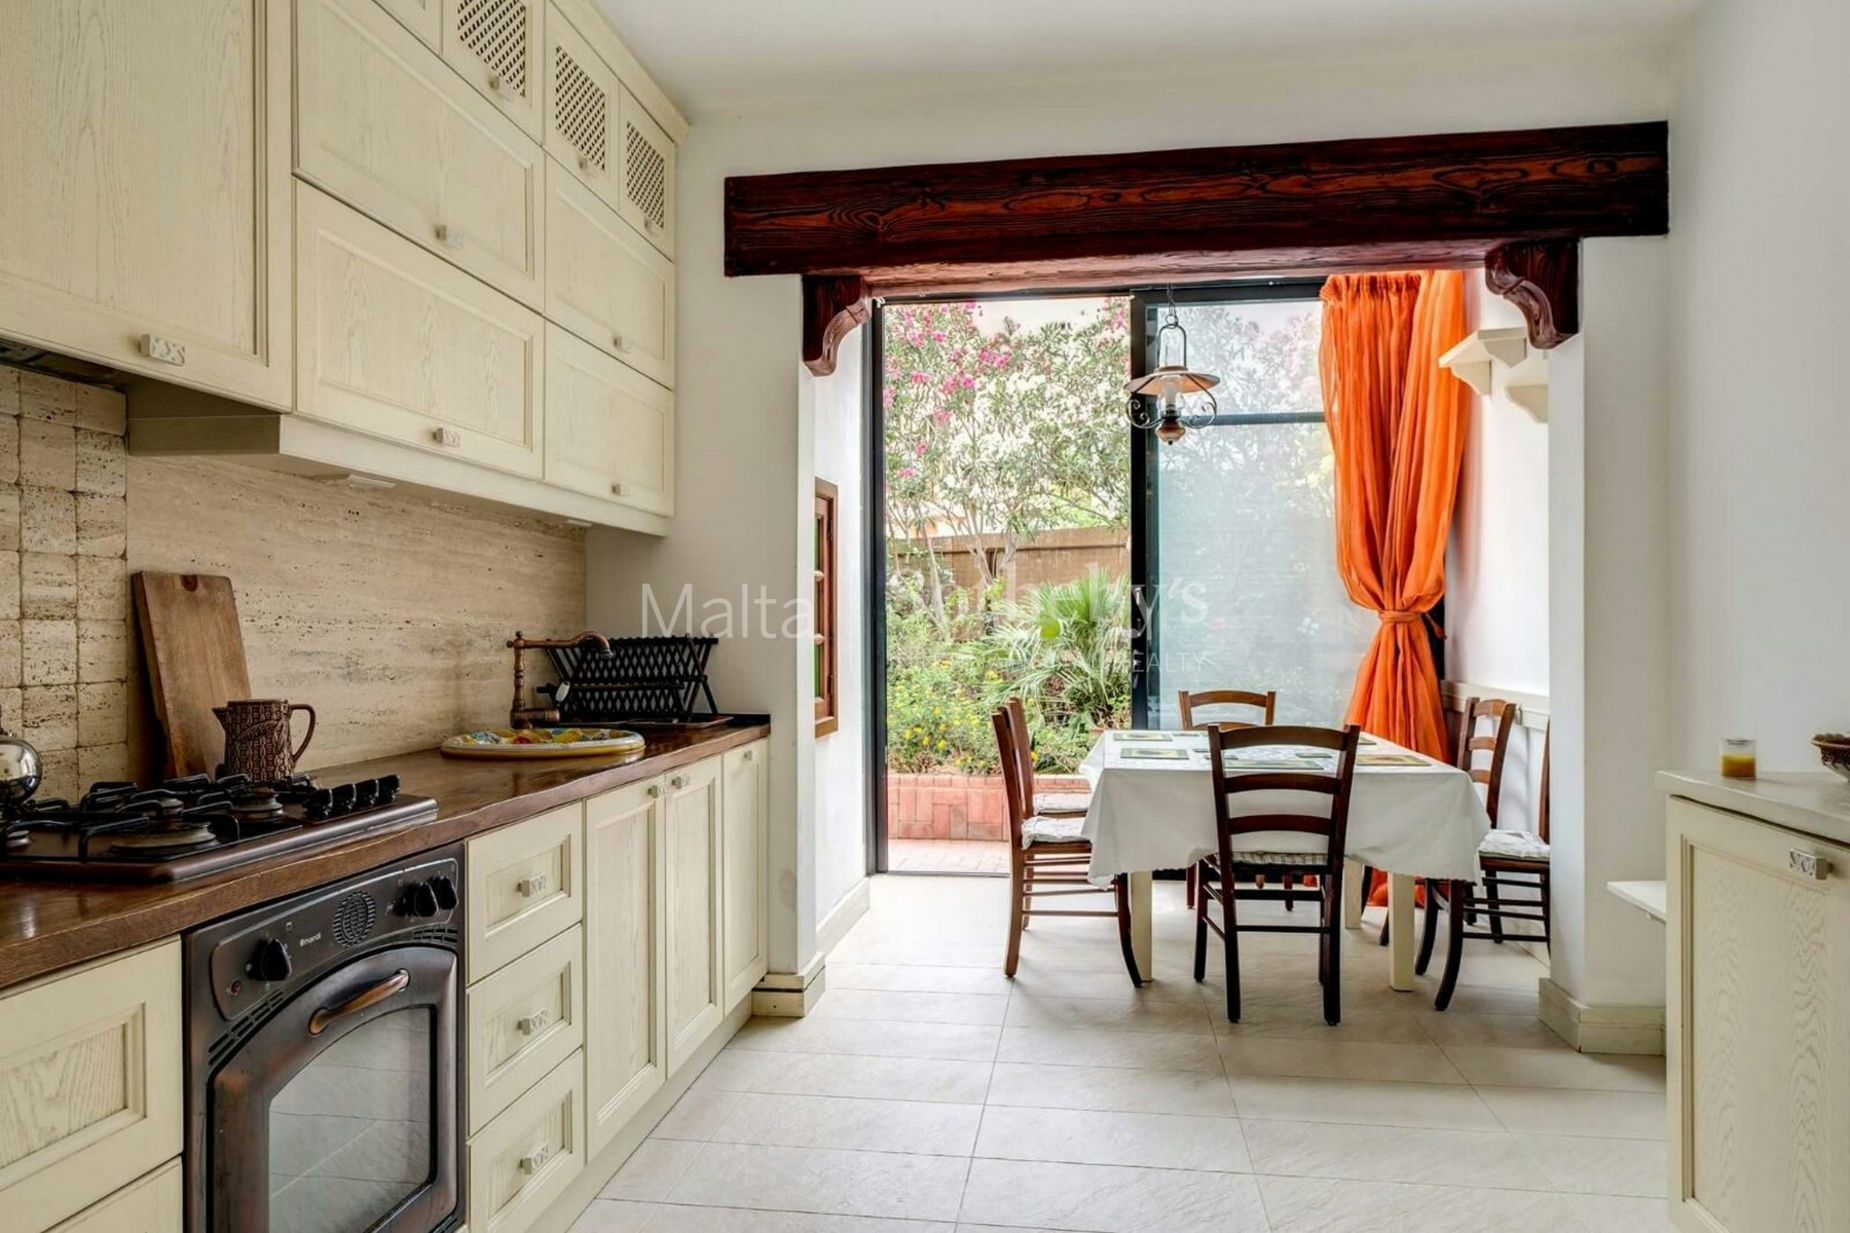 2 bed Apartment For Sale in Swieqi, Swieqi - thumb 2